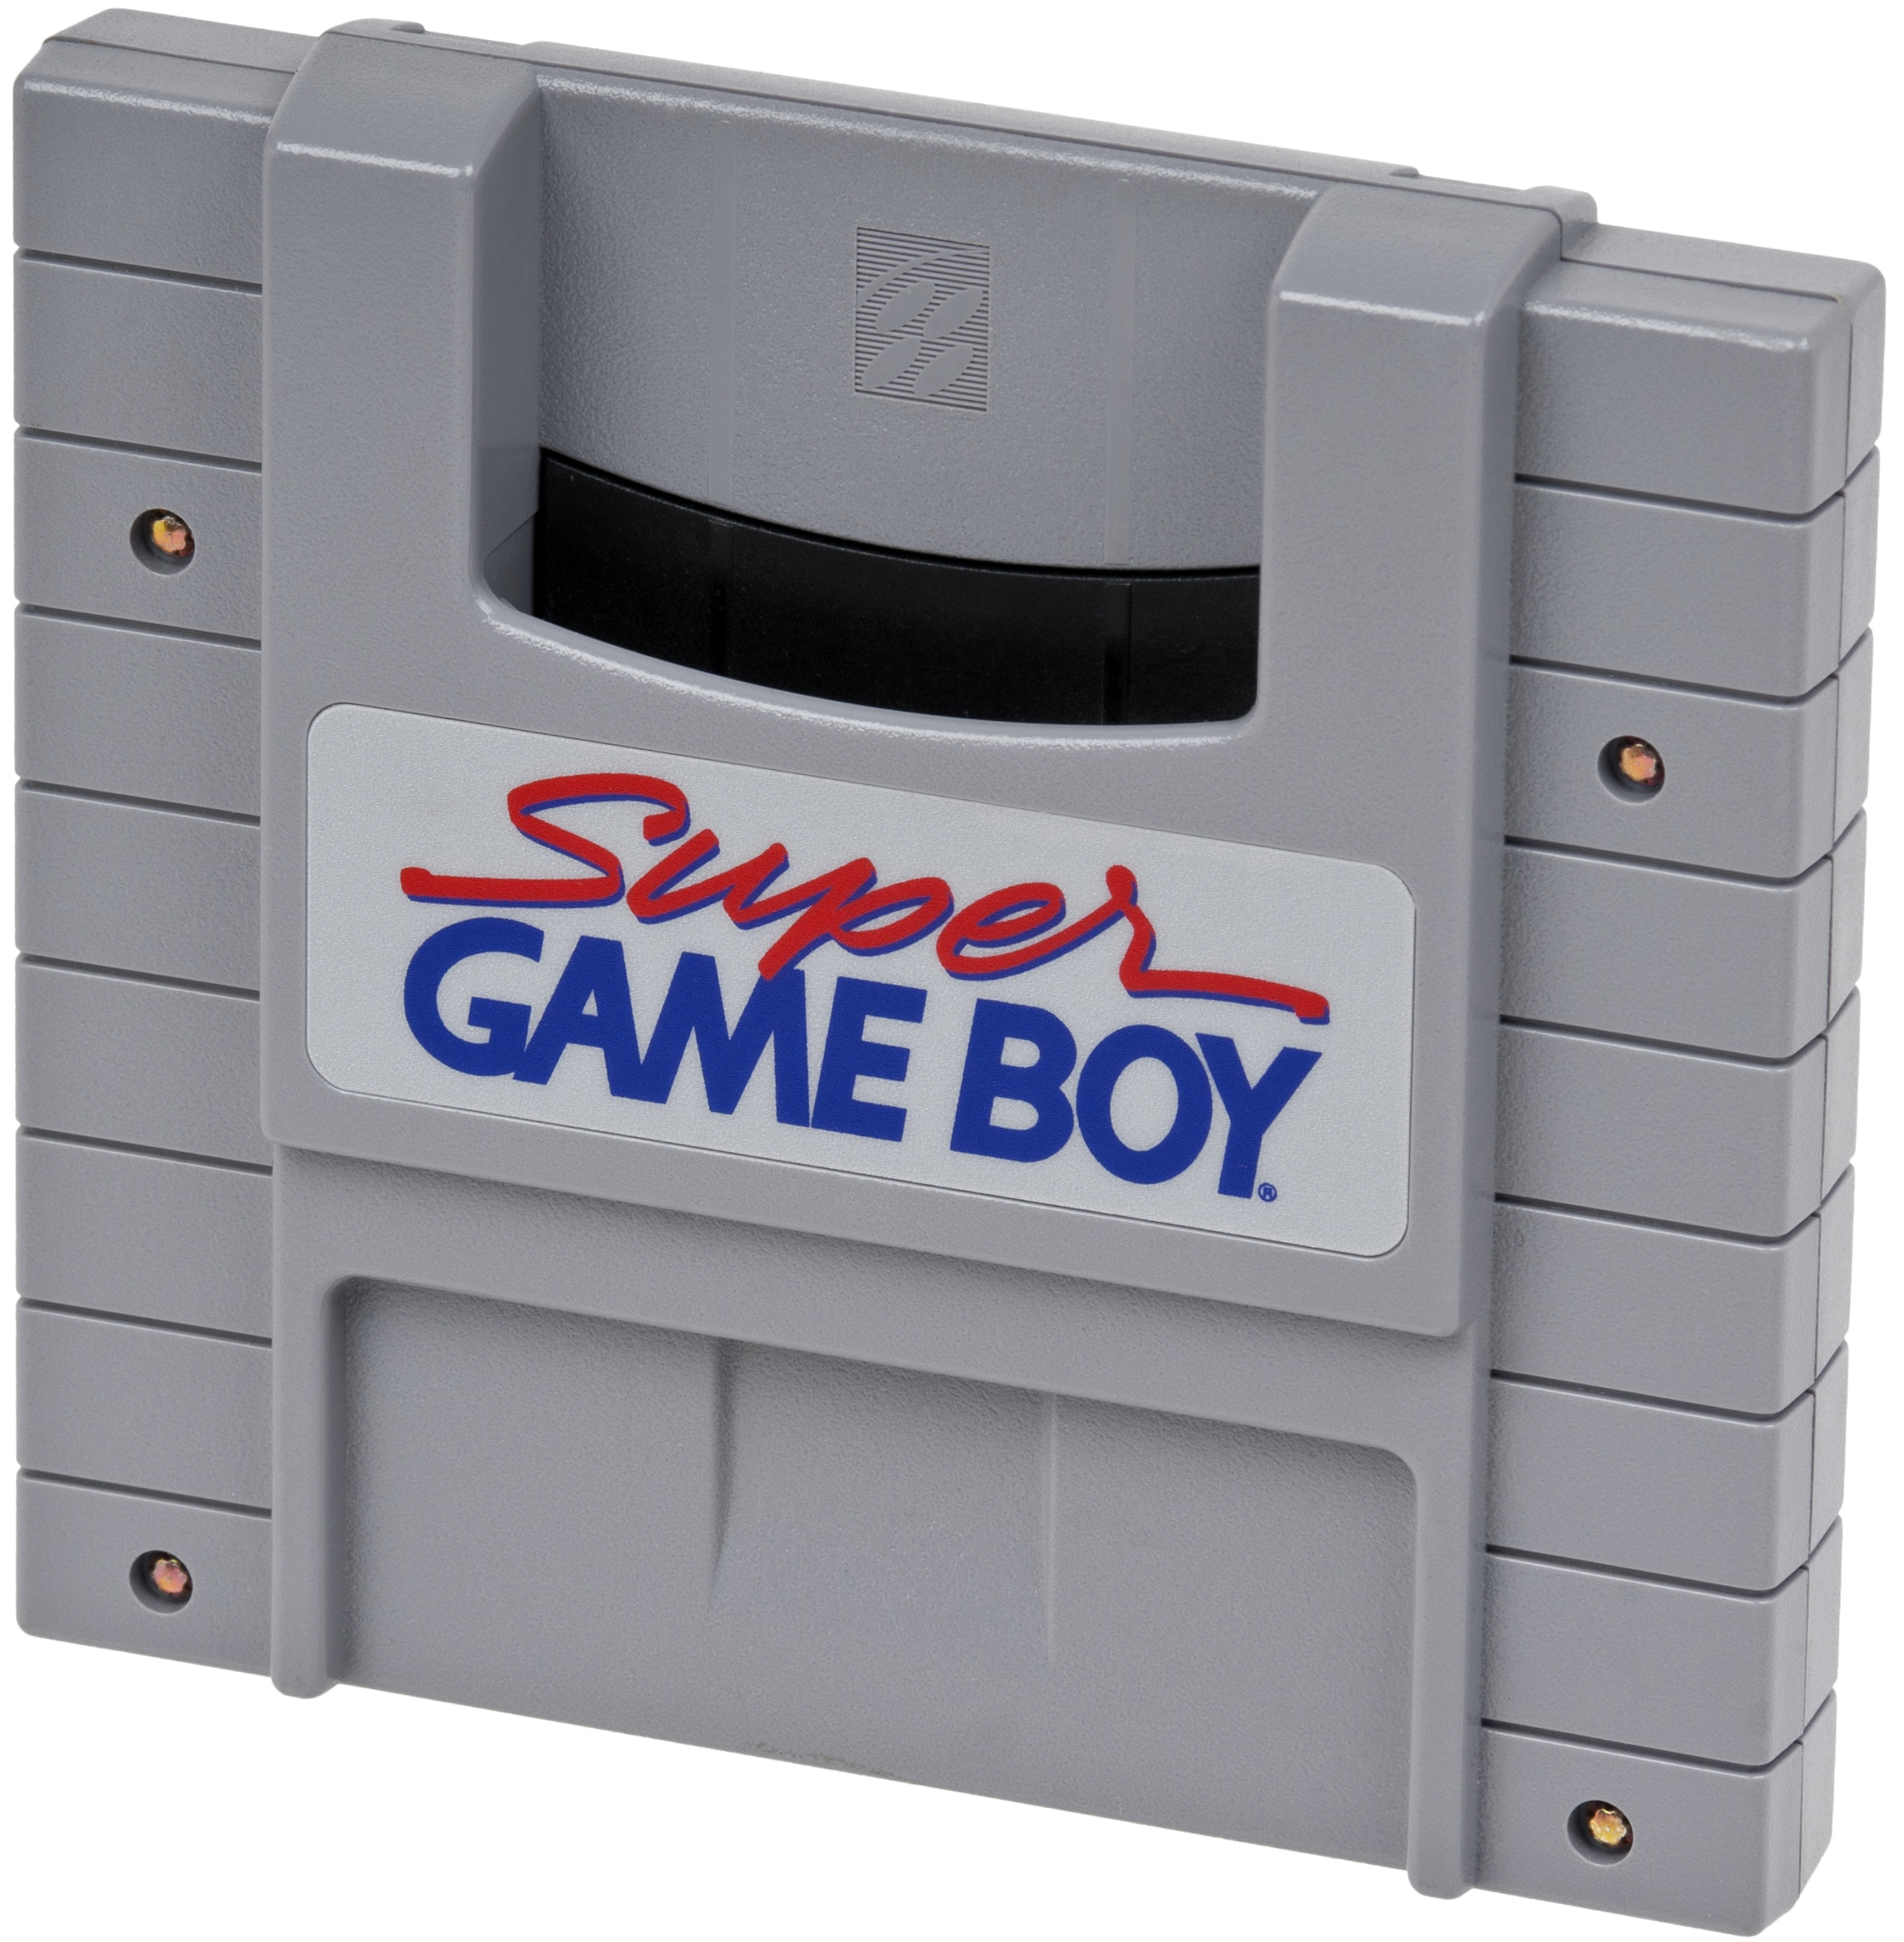 Super Gameboy U.S